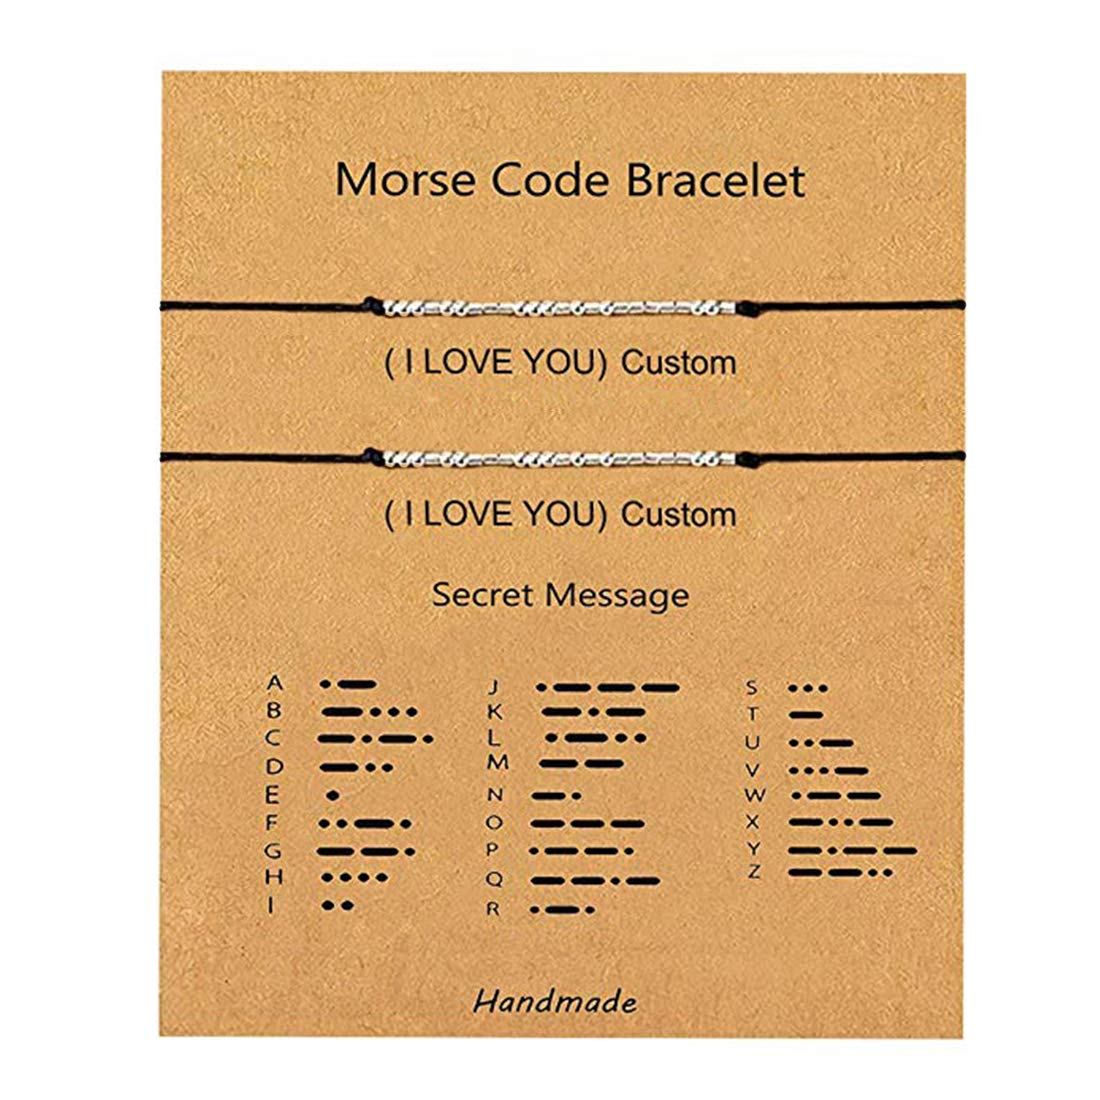 Custom Morse Code Bracelet Sterling Silver Beads on Silk Cord Personalized Bracelets Gift Jewelry for Couples Best Friend Family